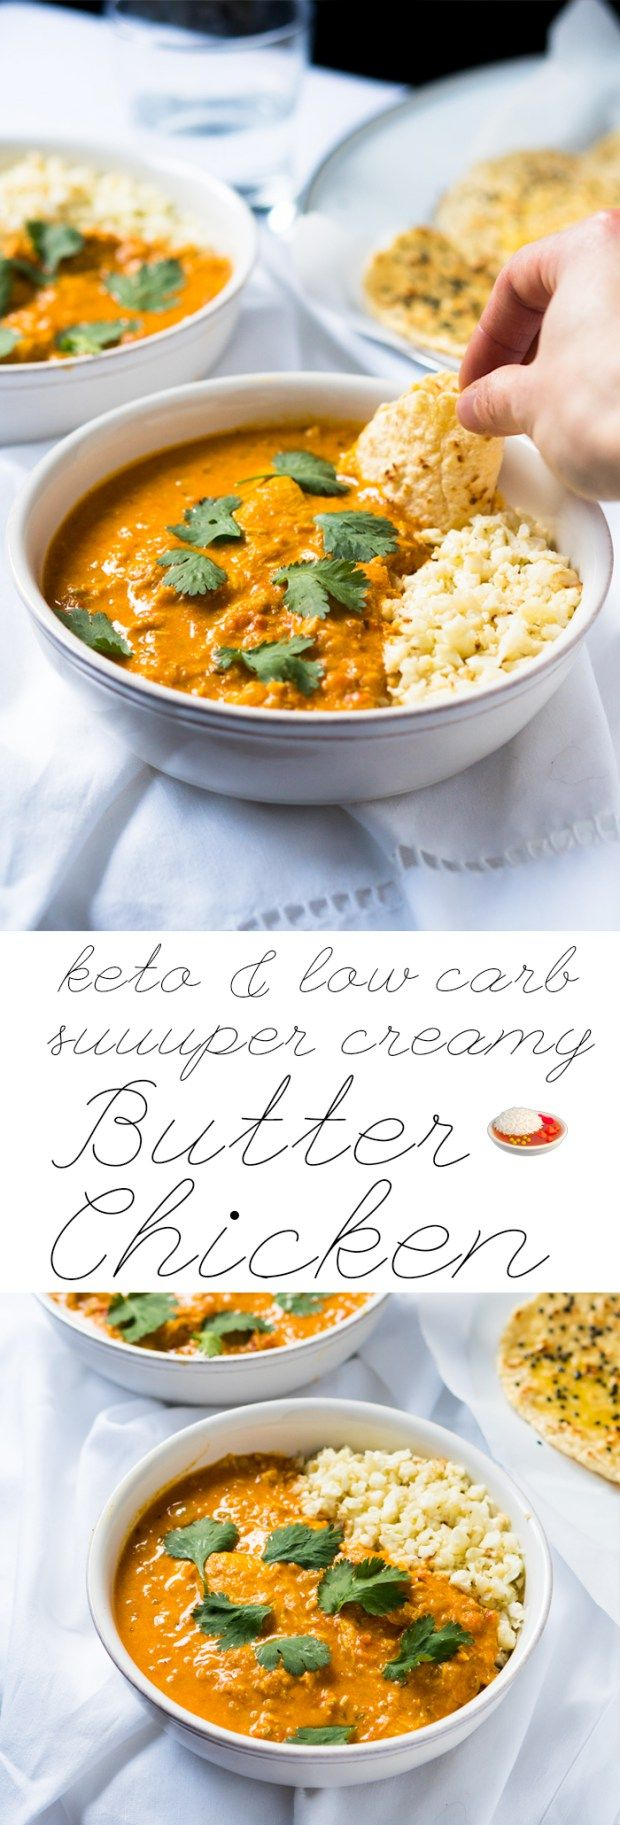 Low Carb & Keto Butter Chicken  #ketobutterchicken #butterchicken